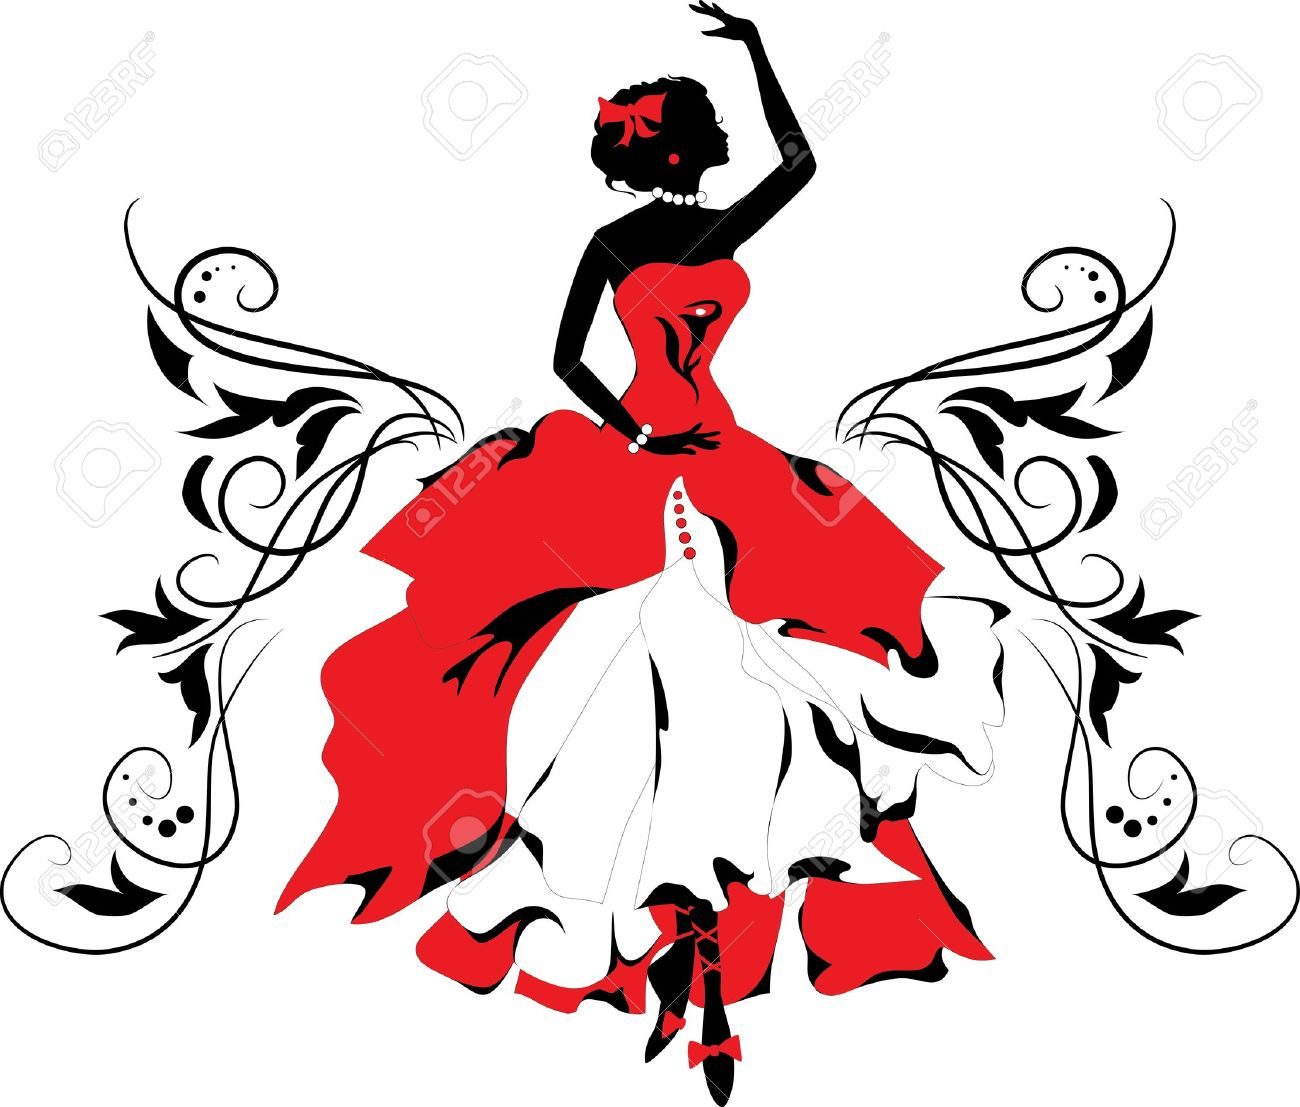 Graphic silhouette of a woman Ballerina with floral ornament - 13759000